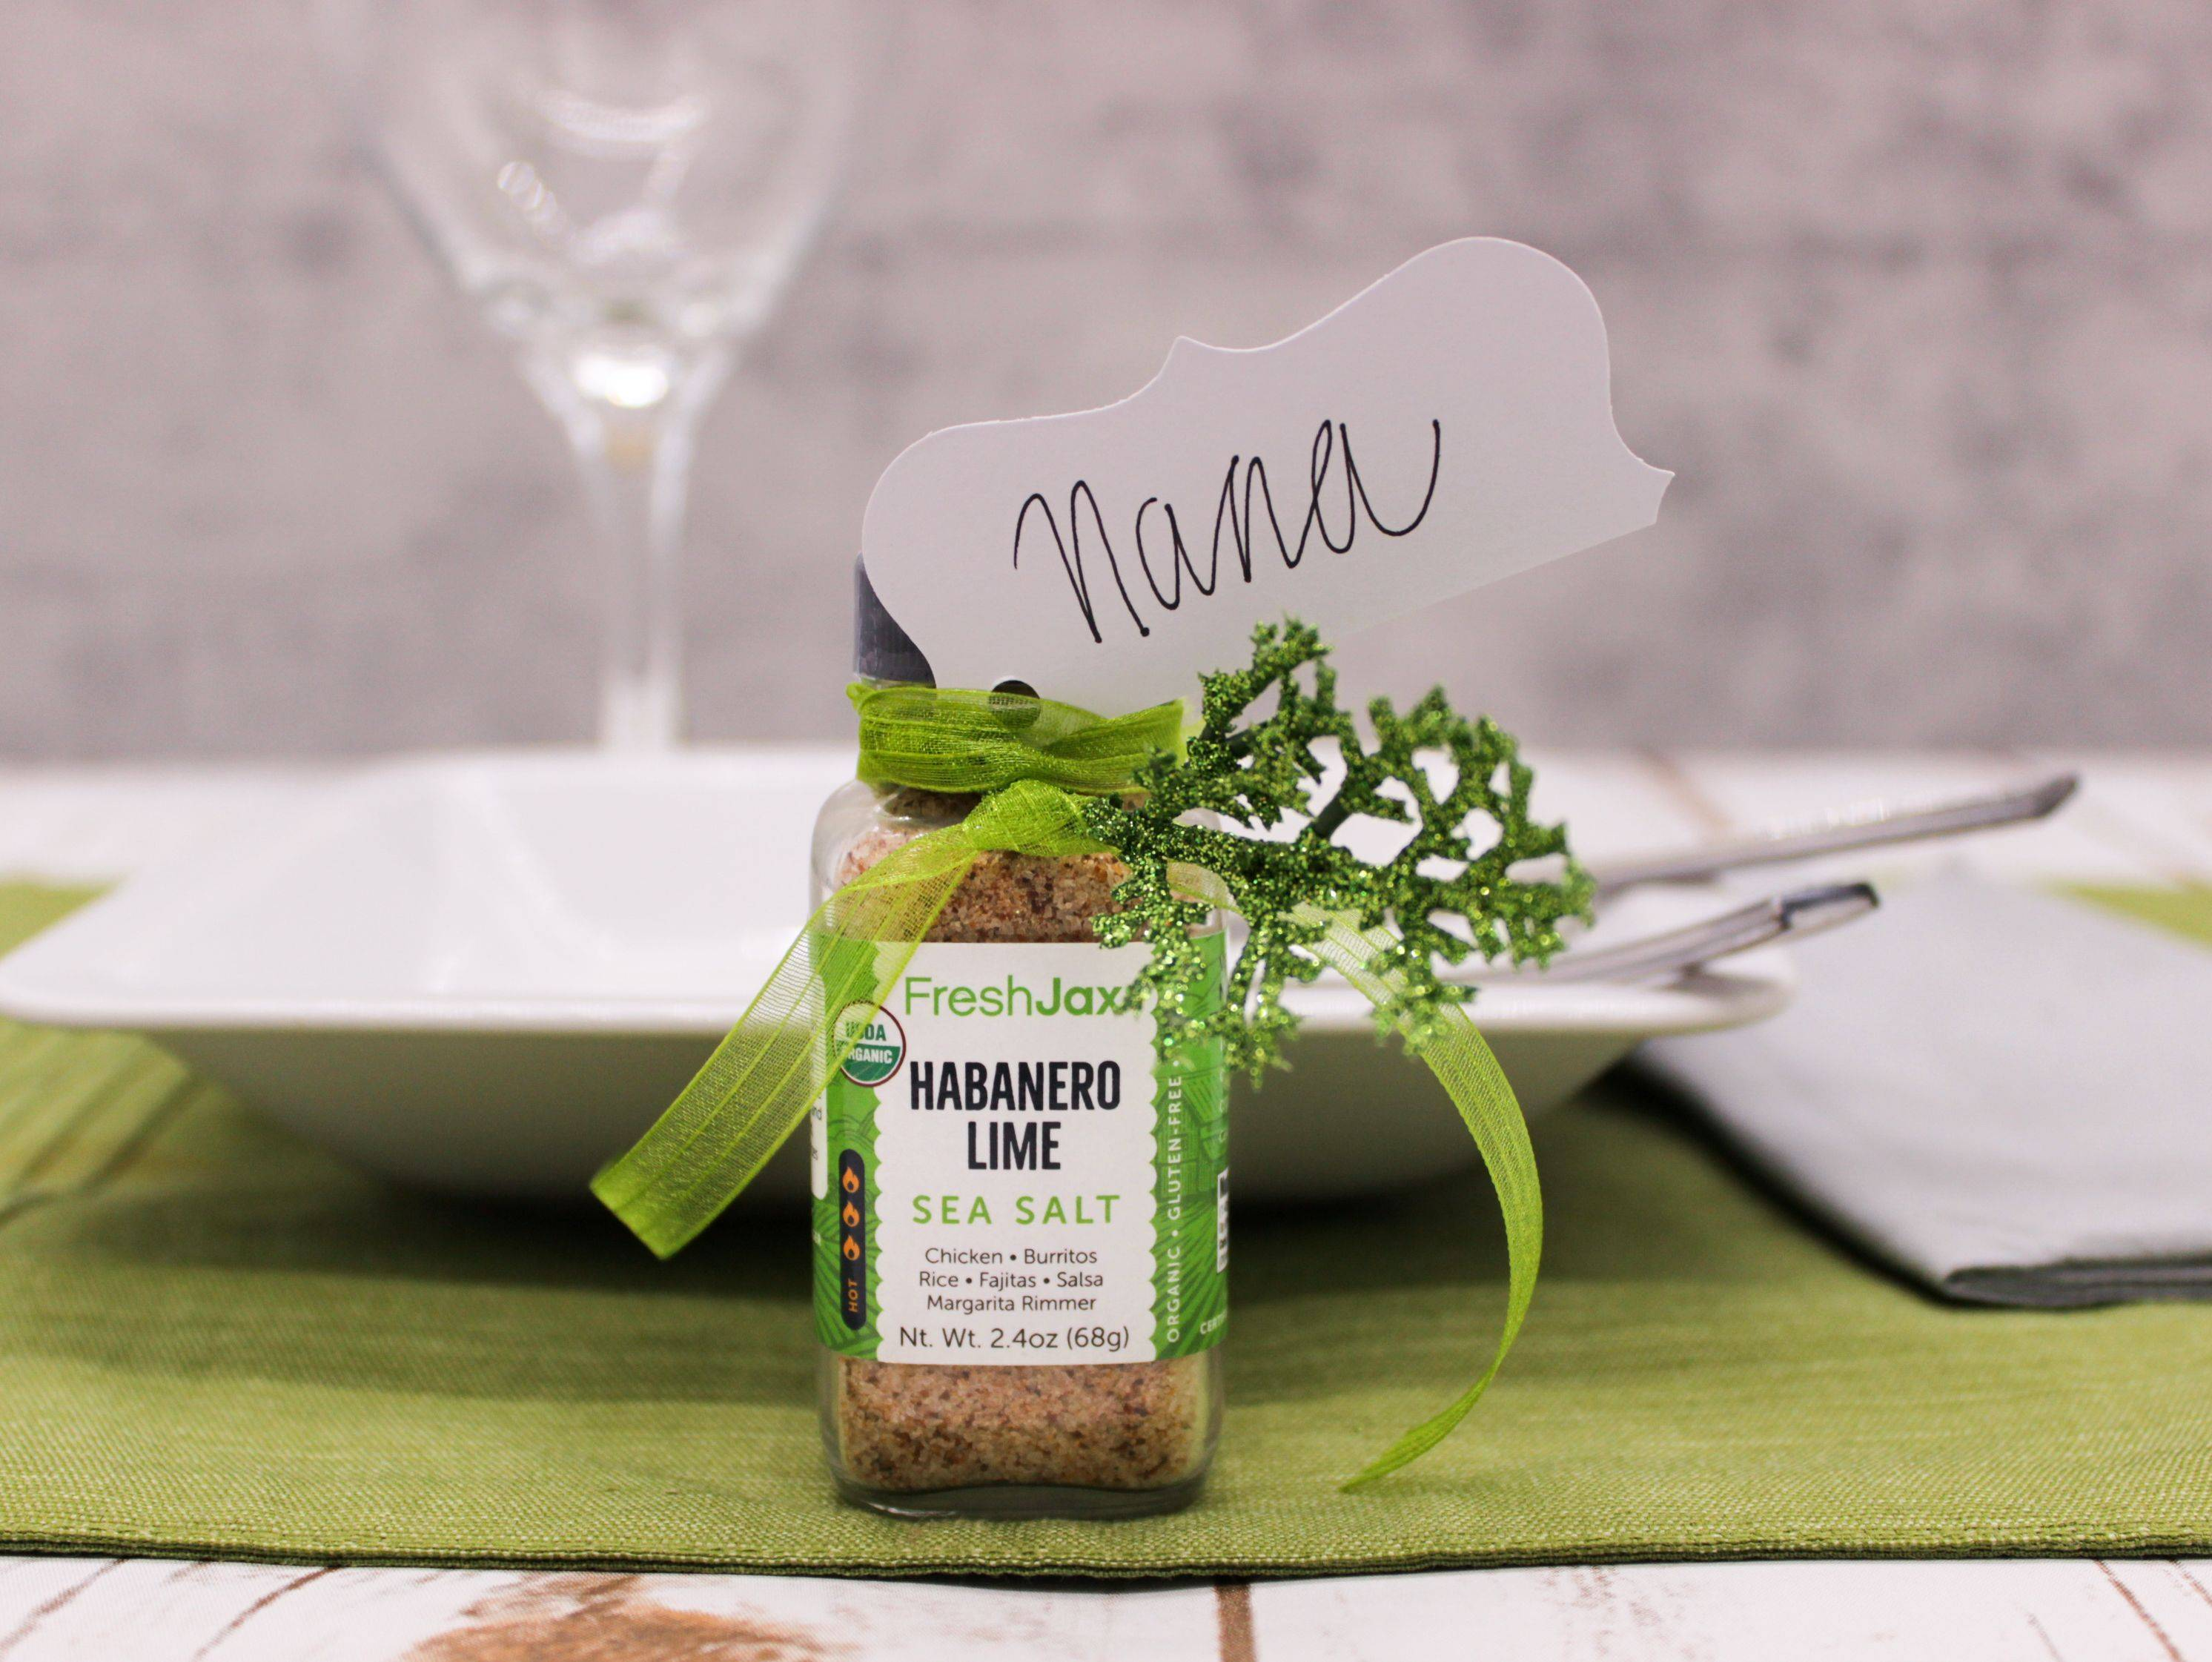 freshjax organic spices diy table place holder with seasoning bottle